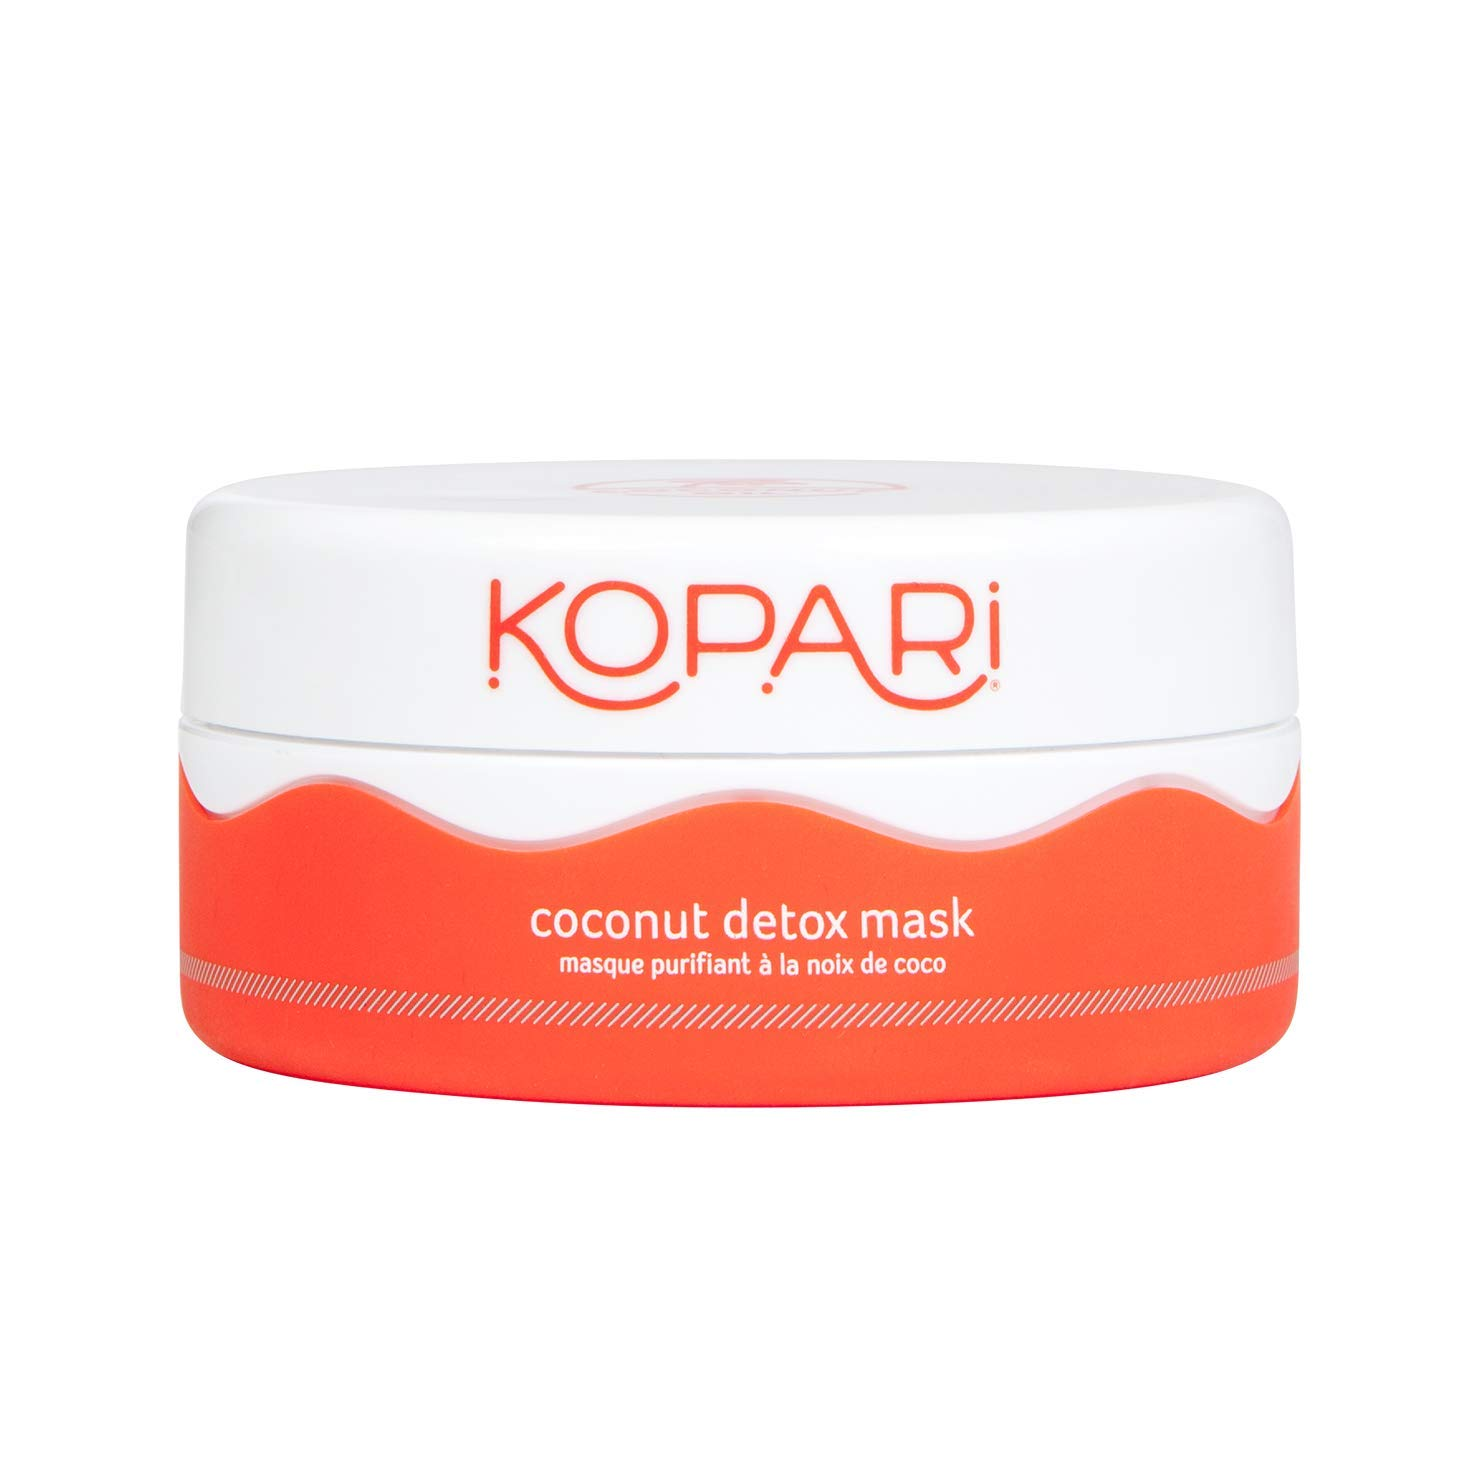 Kopari Coconut Detox Mask- Clay Mask Made With Superfoods, Green Tea, Probiotics, Coconut Oil And More to Remove Impurities and Replenish Skin